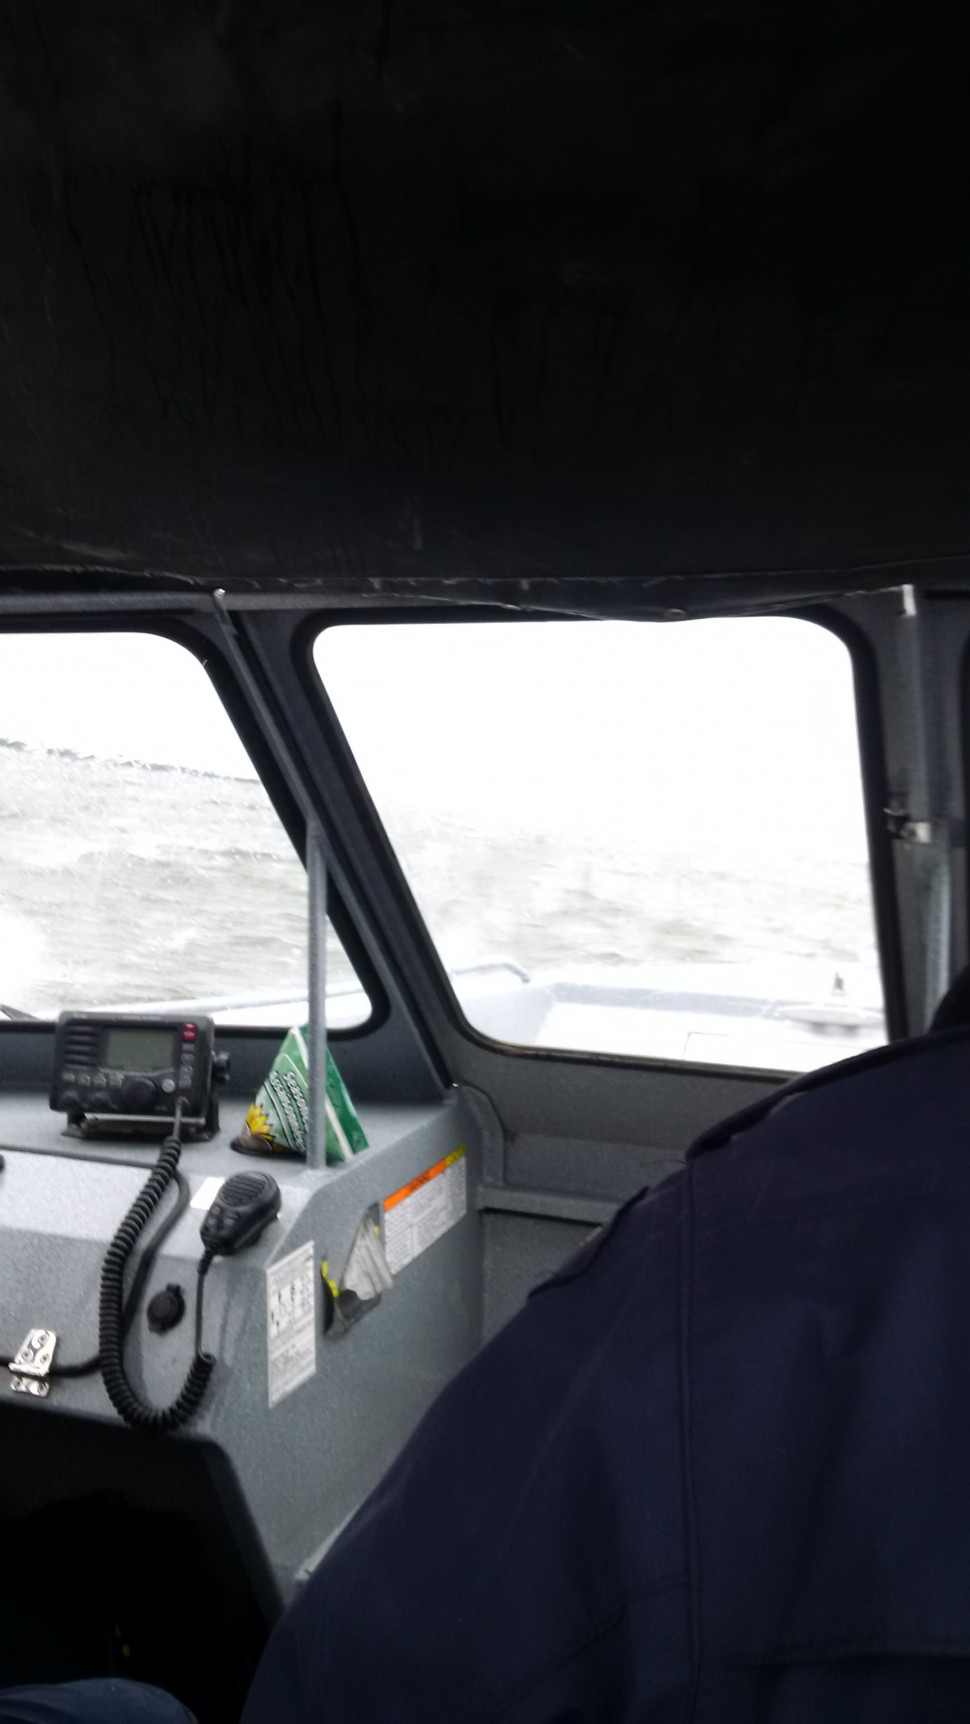 Weather/wave conditions out on the water (Aug. 28th)